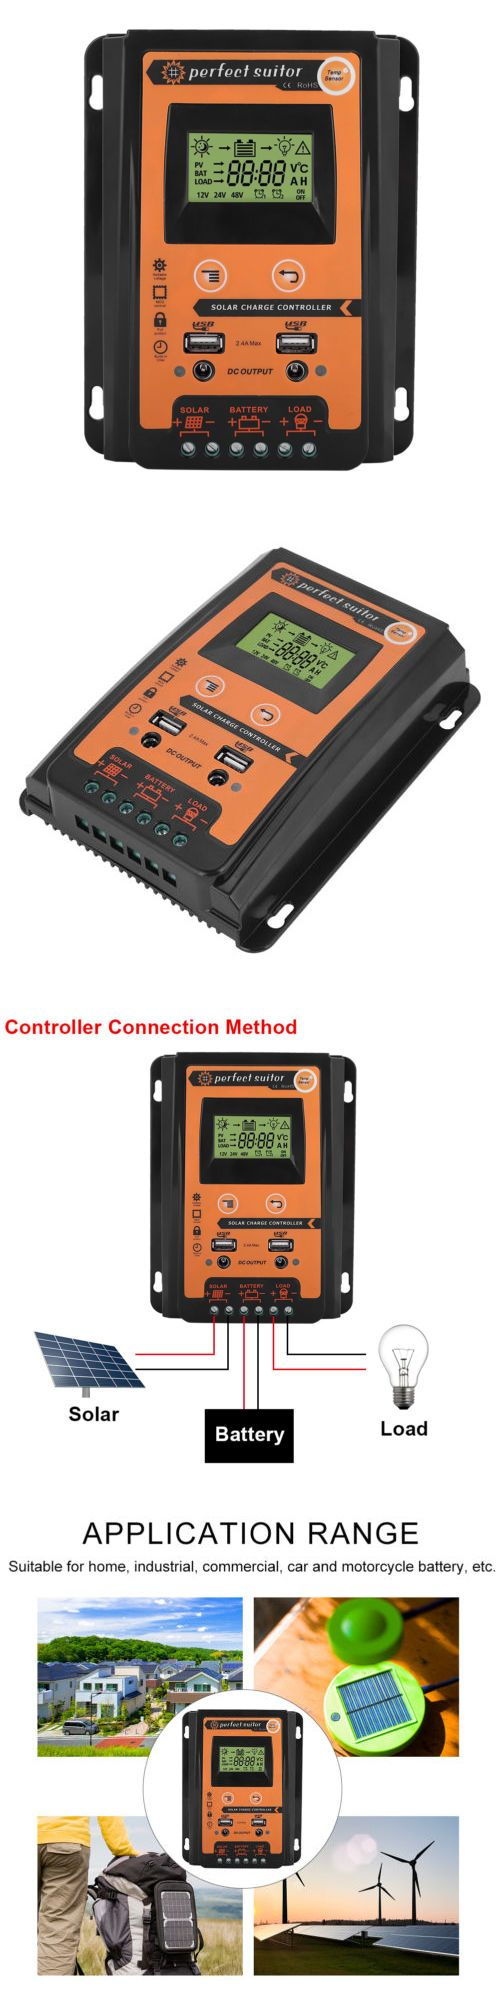 Chargers And Inverters 41980 30a Lcd Mppt Solar Panel Regulator Charge Controller 12 24v Auto Focus Tracking Buy It Now Only Solar Battery Chargers Solar